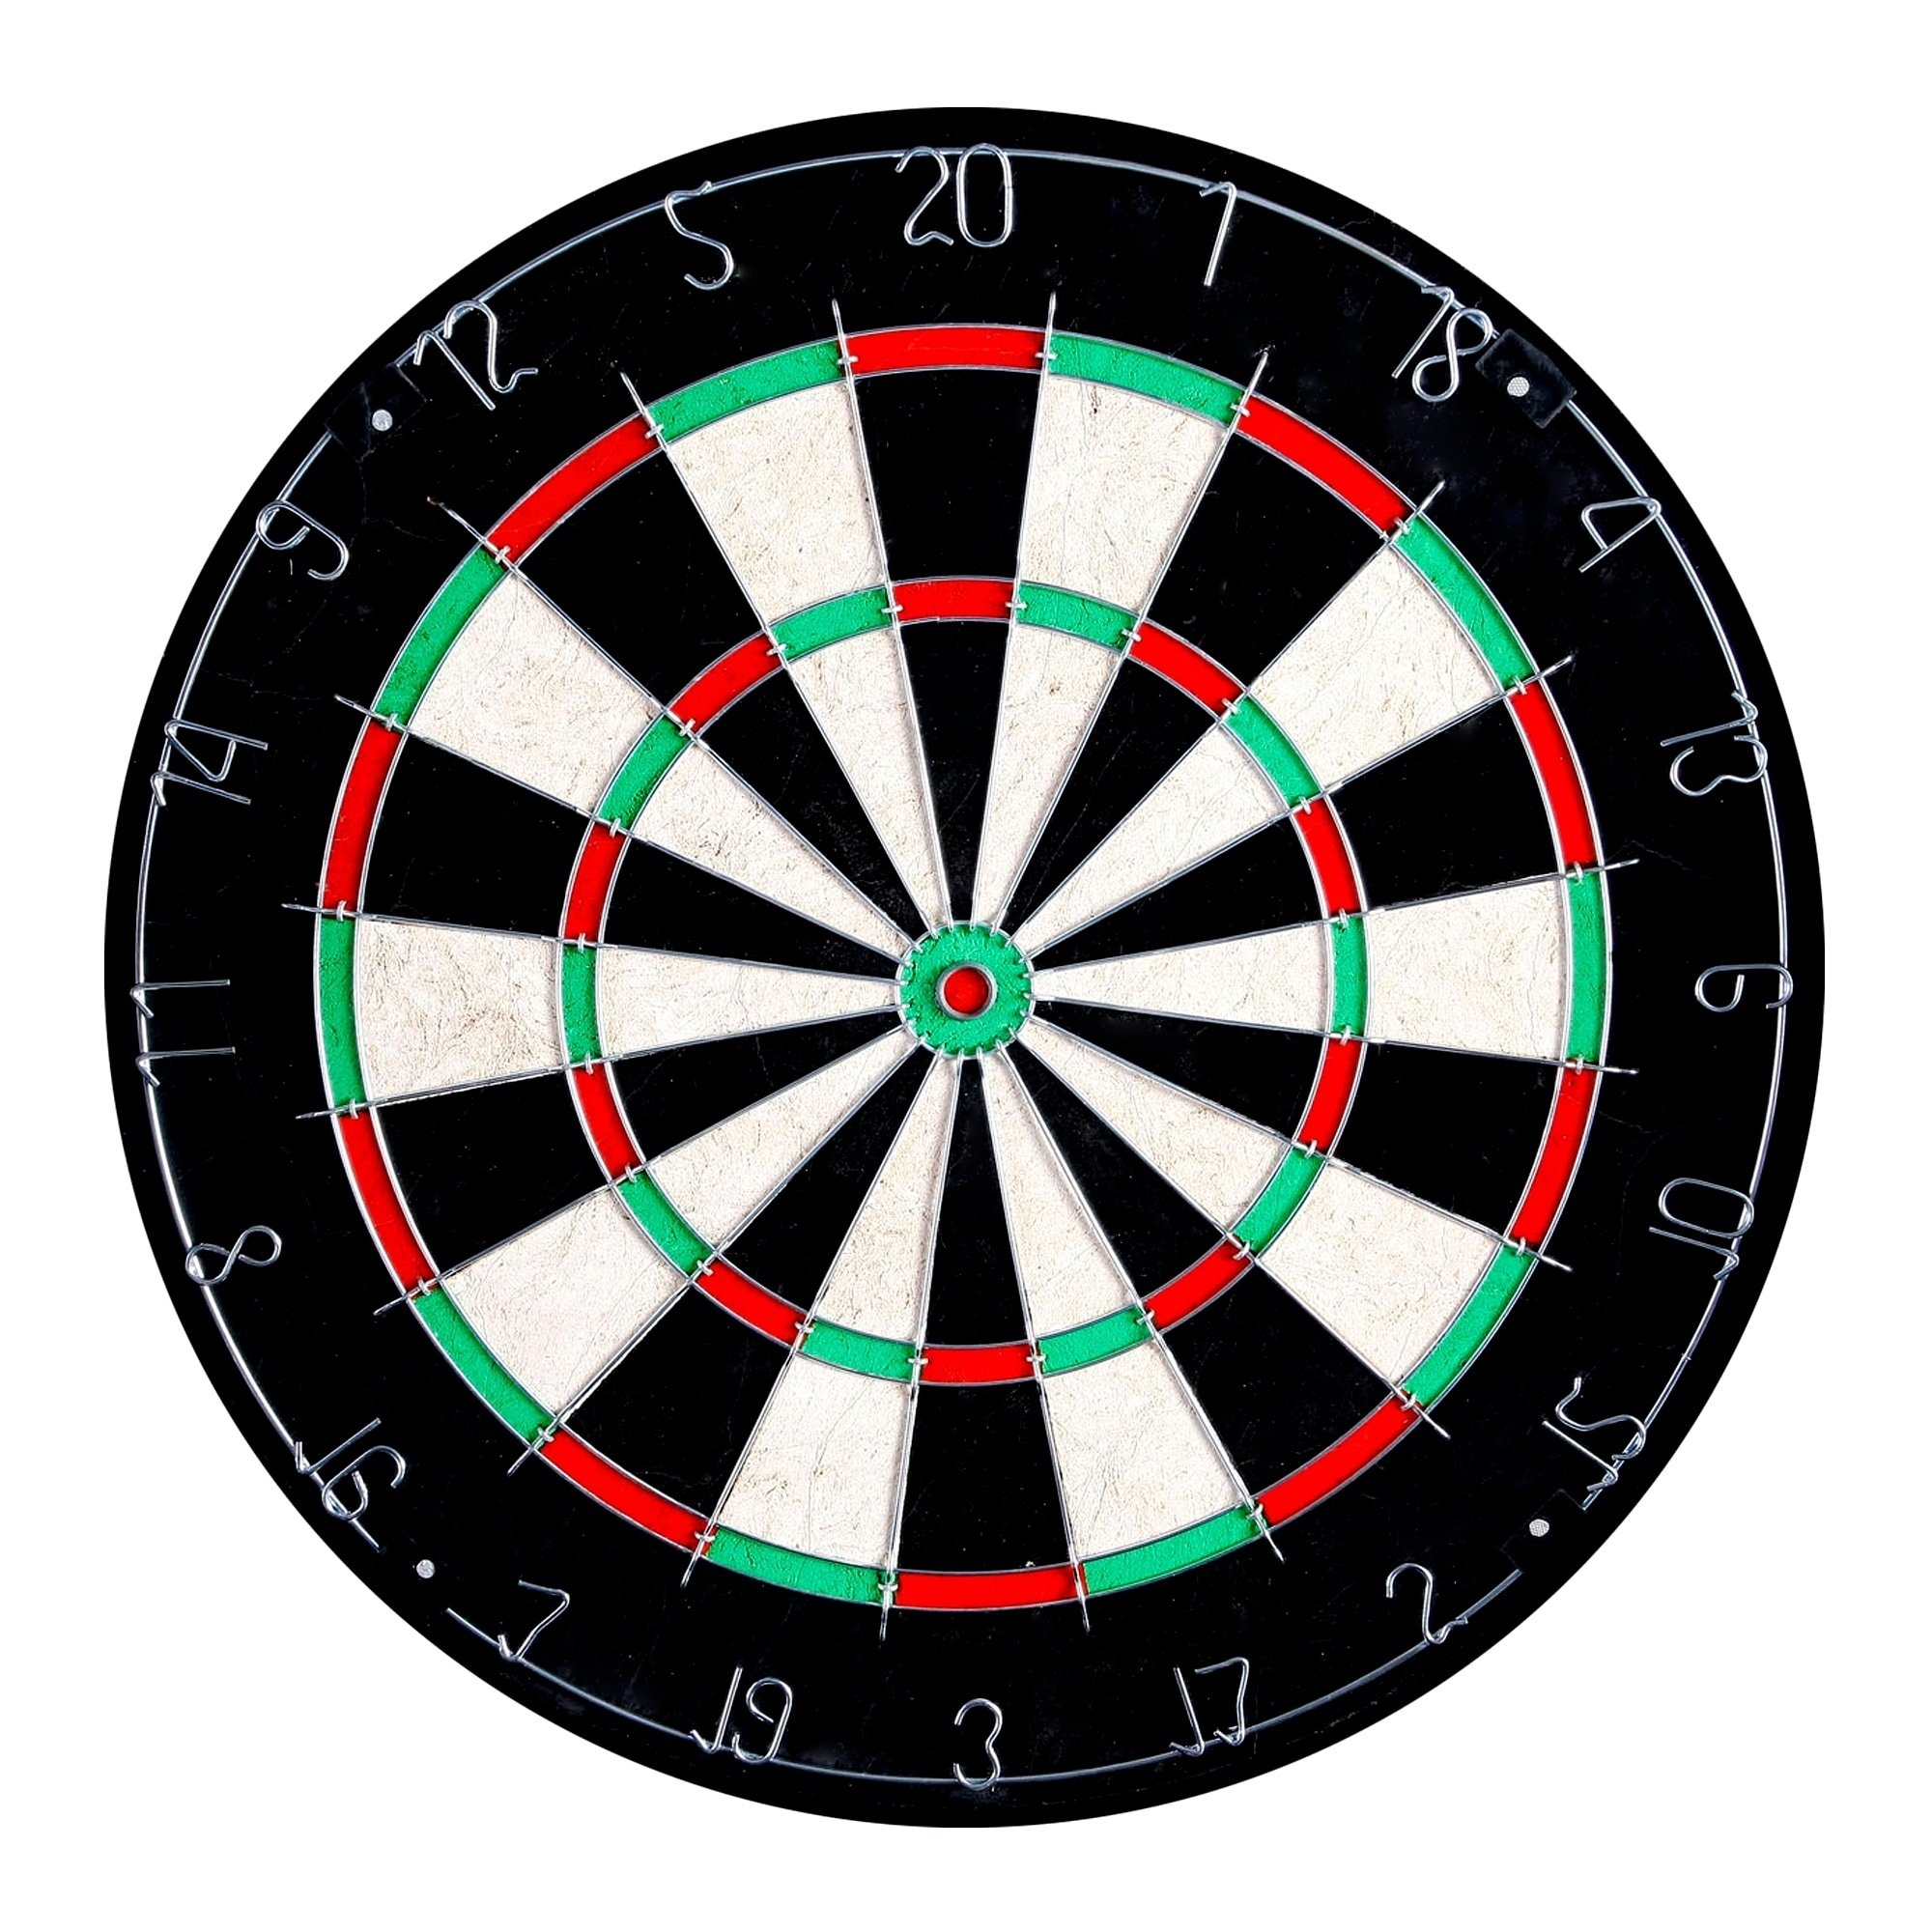 Shop Drifter Solid Wood Dartboard U0026 Cabinet Set   White   Free Shipping  Today   Overstock.com   17909766